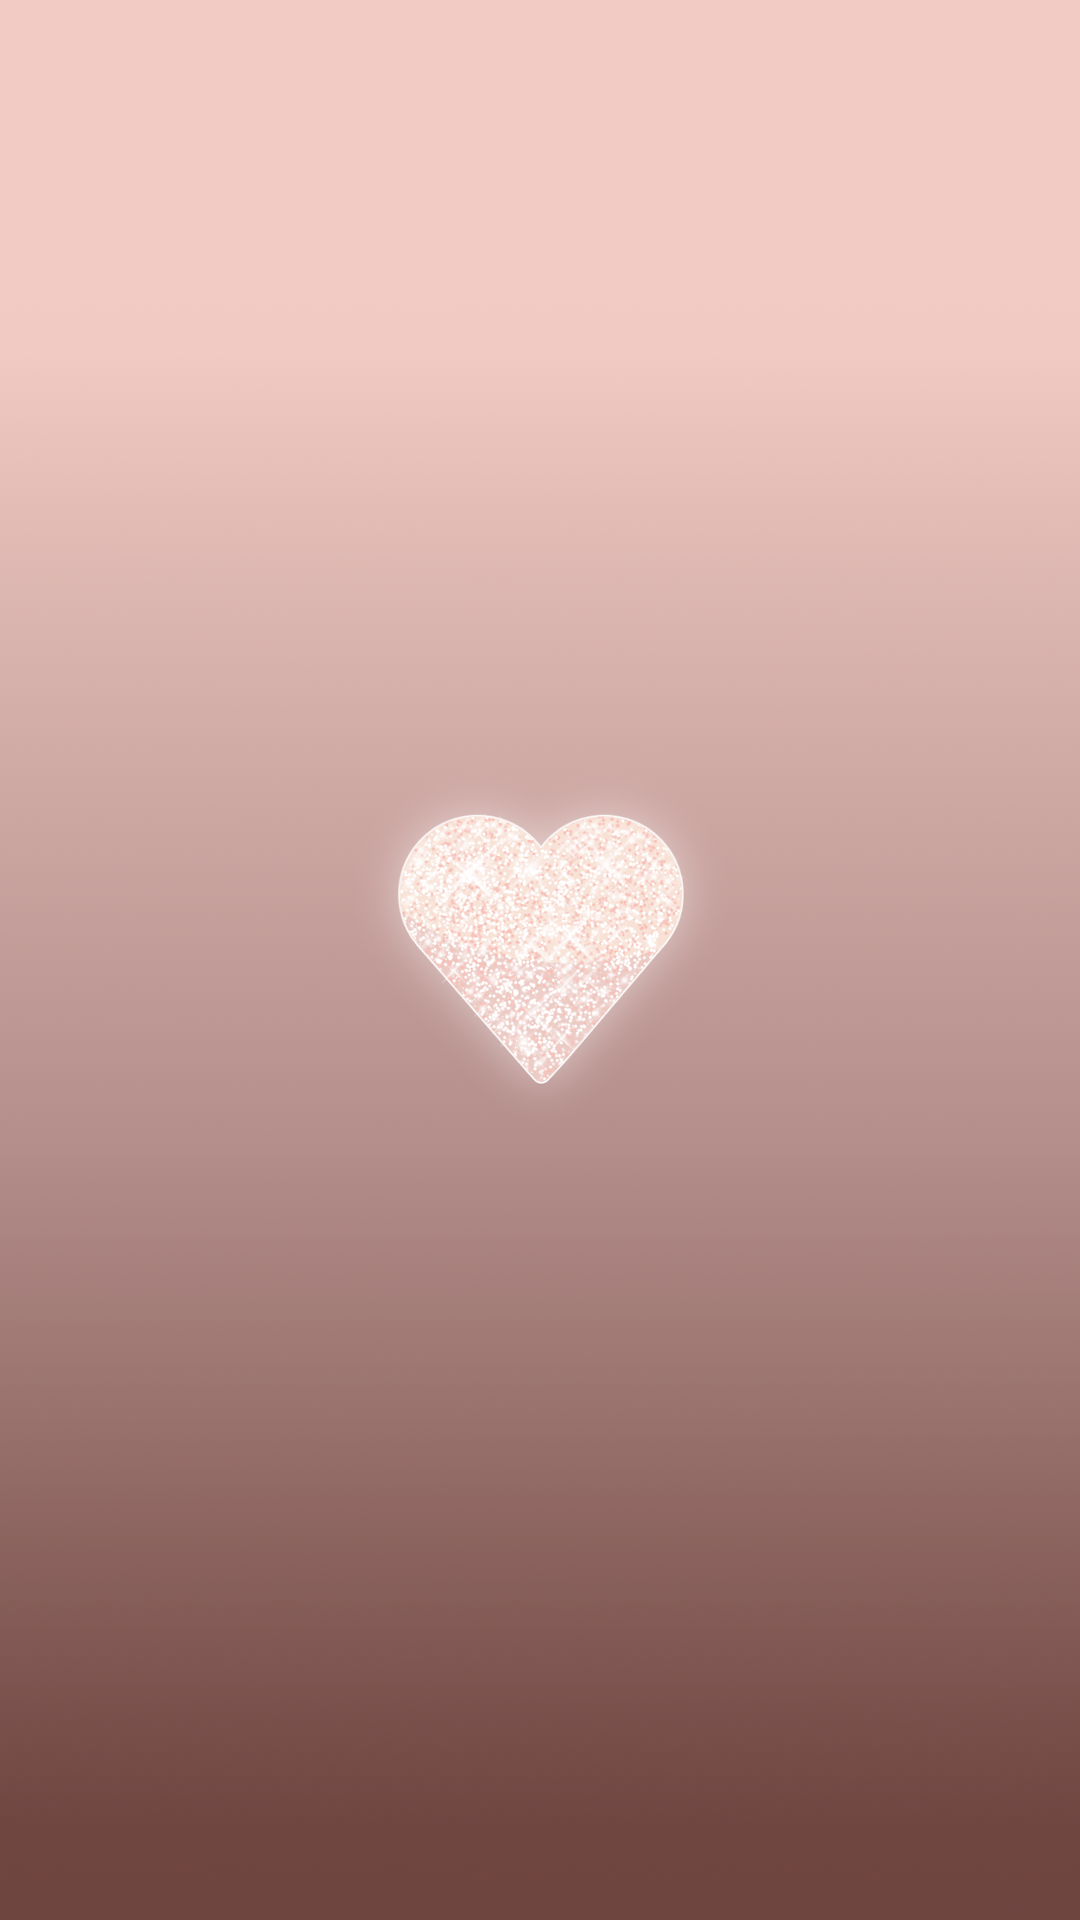 Rose gold iphone wallpaper tumblr - Rose Gold Heart Phone Wallpaper Background Lock Screen